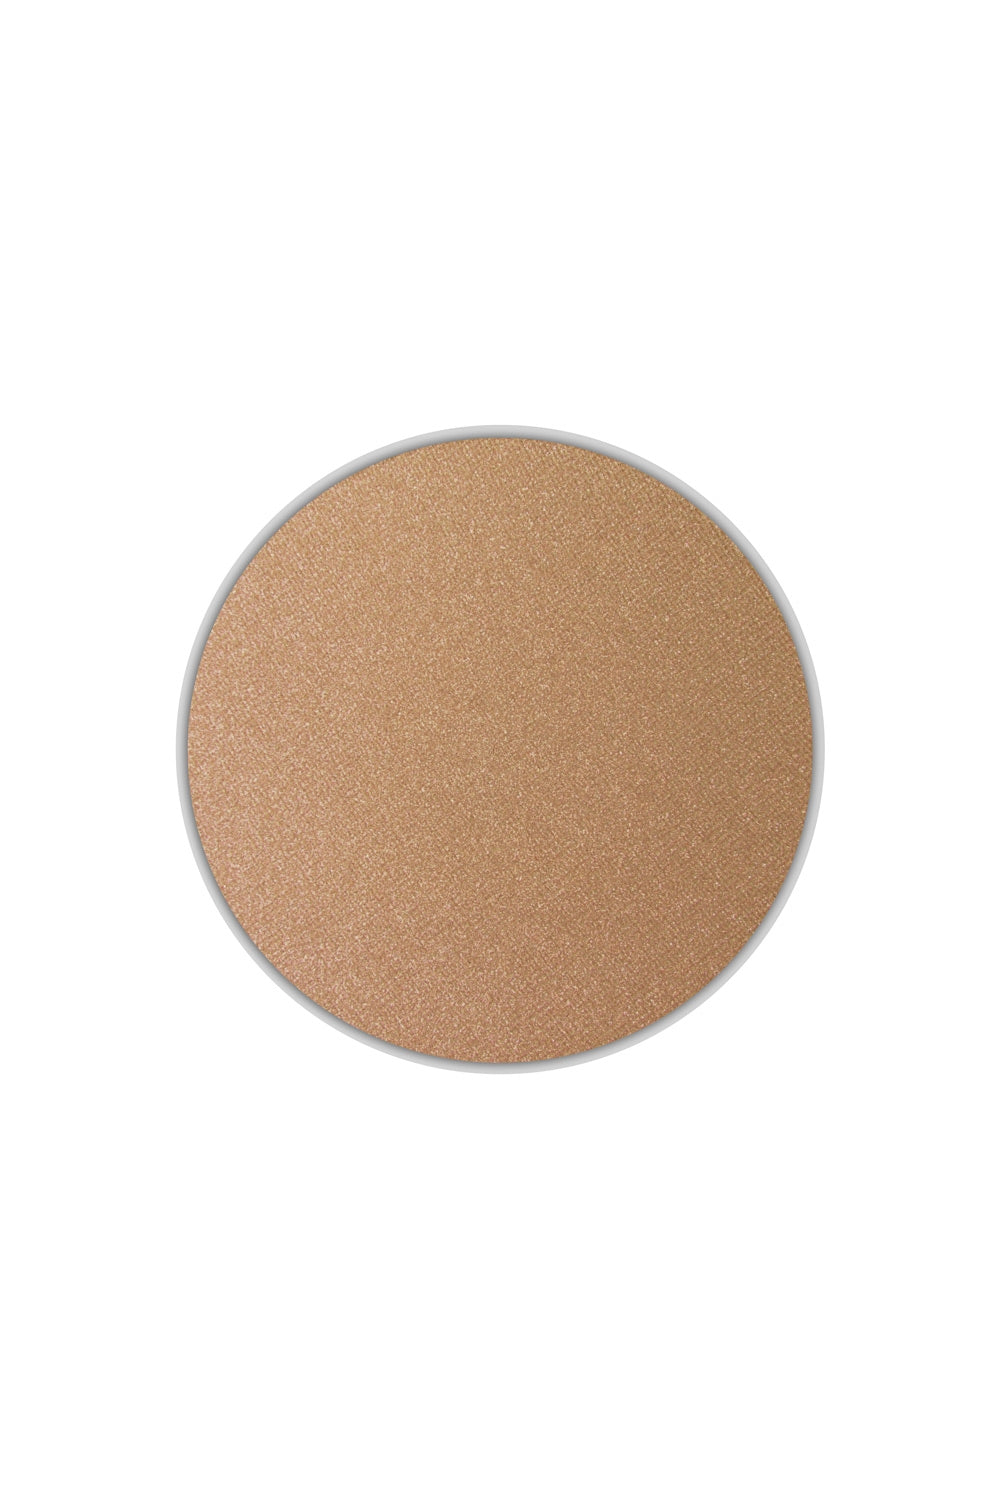 Gold Minx - Type 3 Eyeshadow Pan